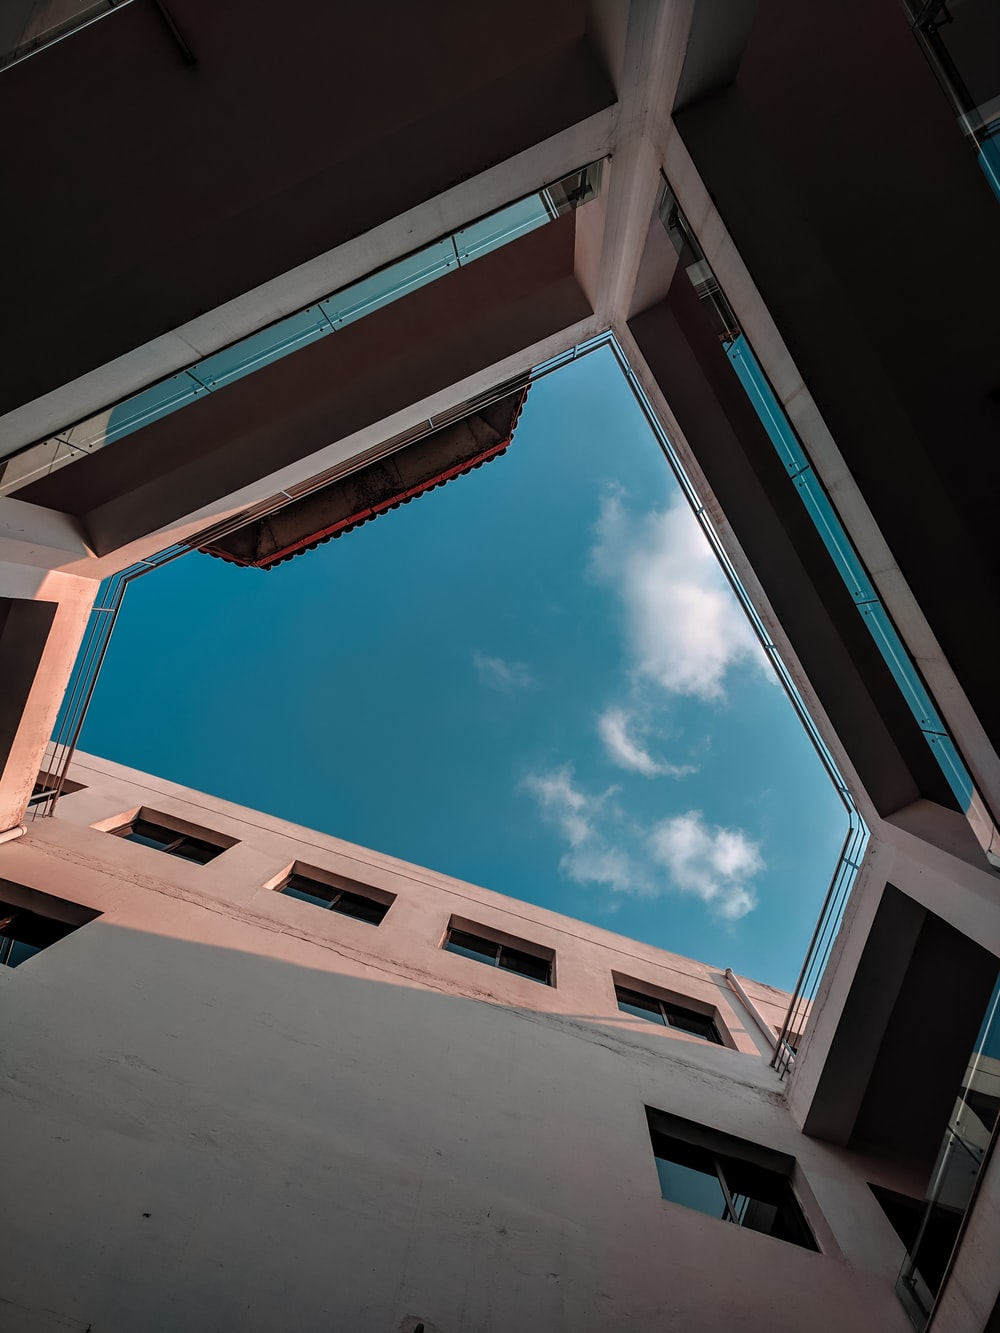 bottom view of concrete building during daytime